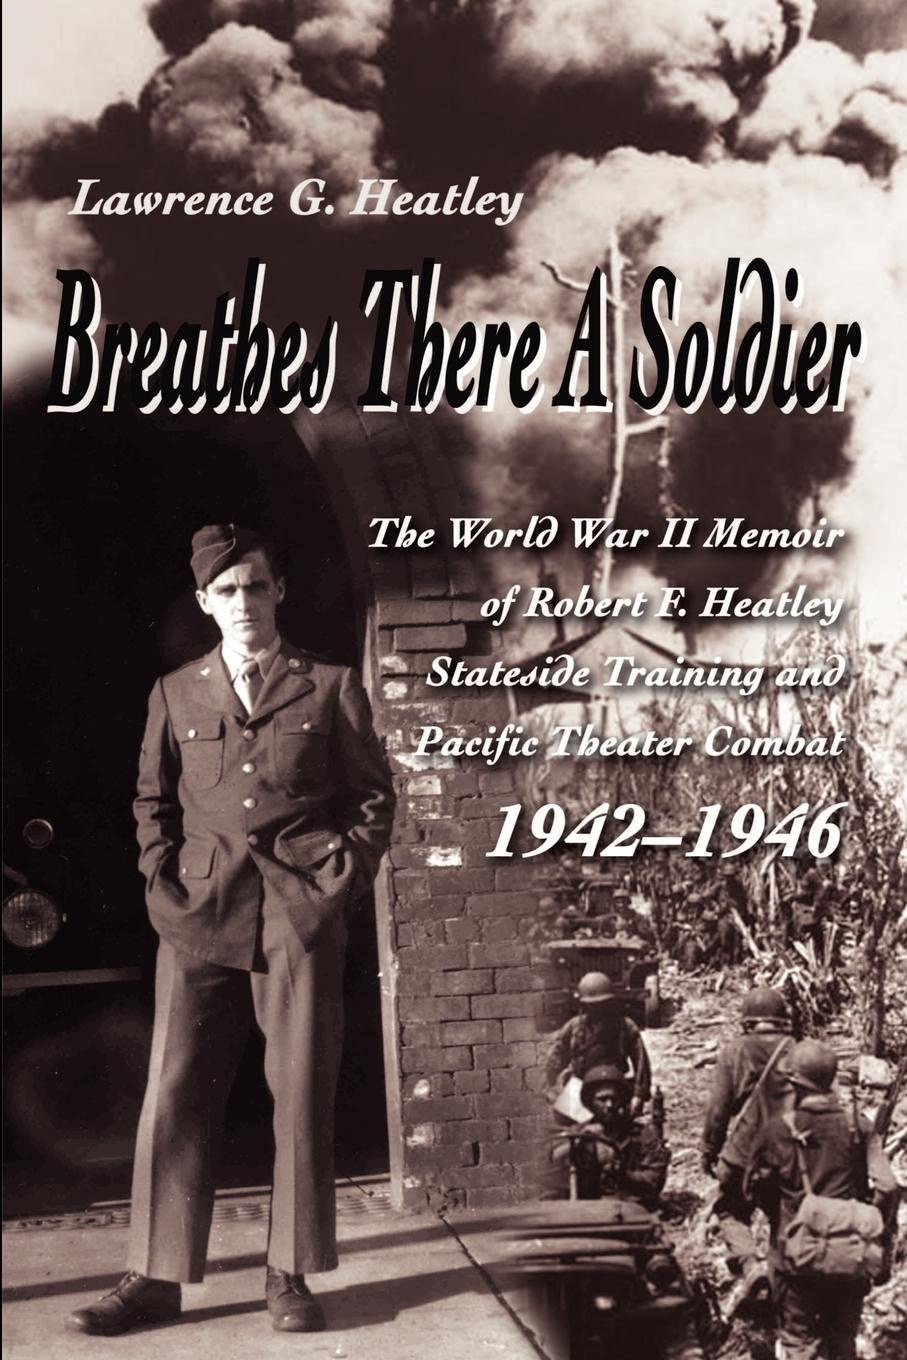 Lawrence Heatley Breathes There a Soldier. The World War II Memoir of Robert F. Heatley Stateside Training and Pacific Theater Combat 1942-1946 цена 2017